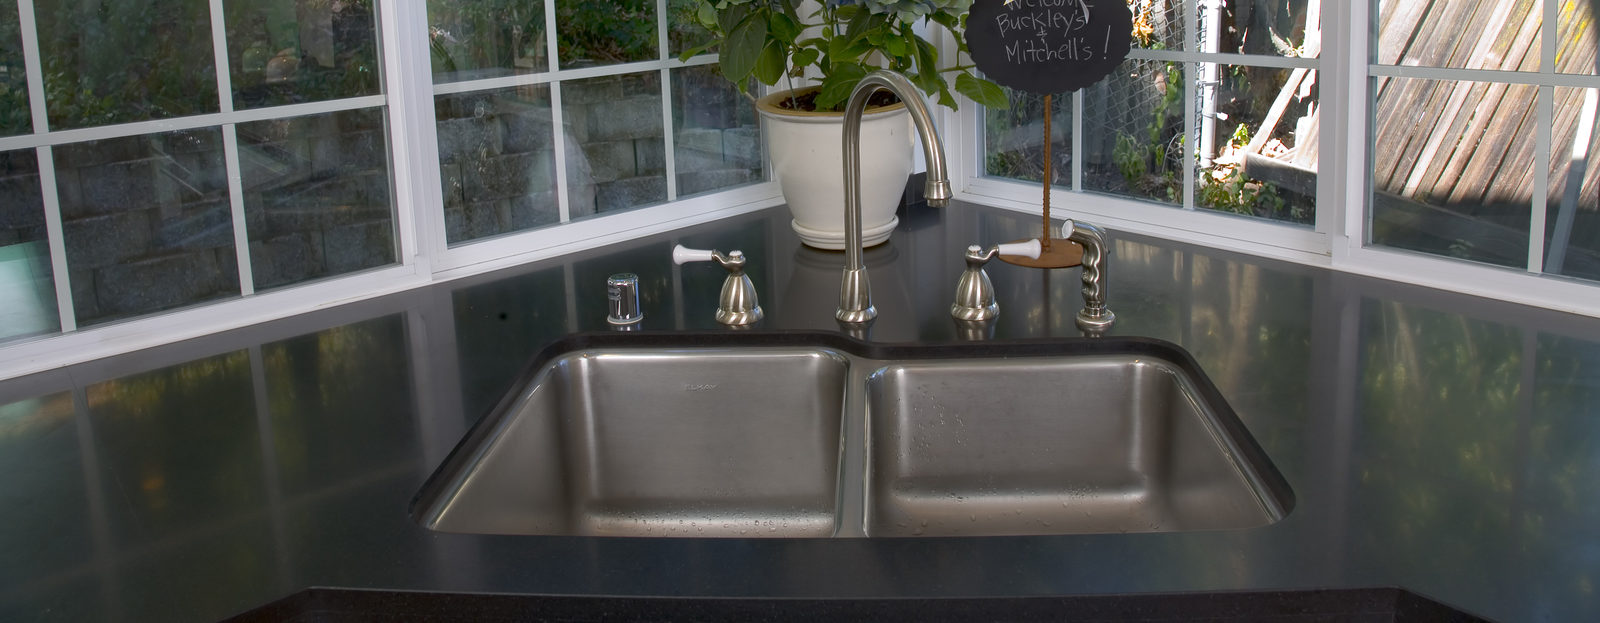 kitchen sink cost prices for install